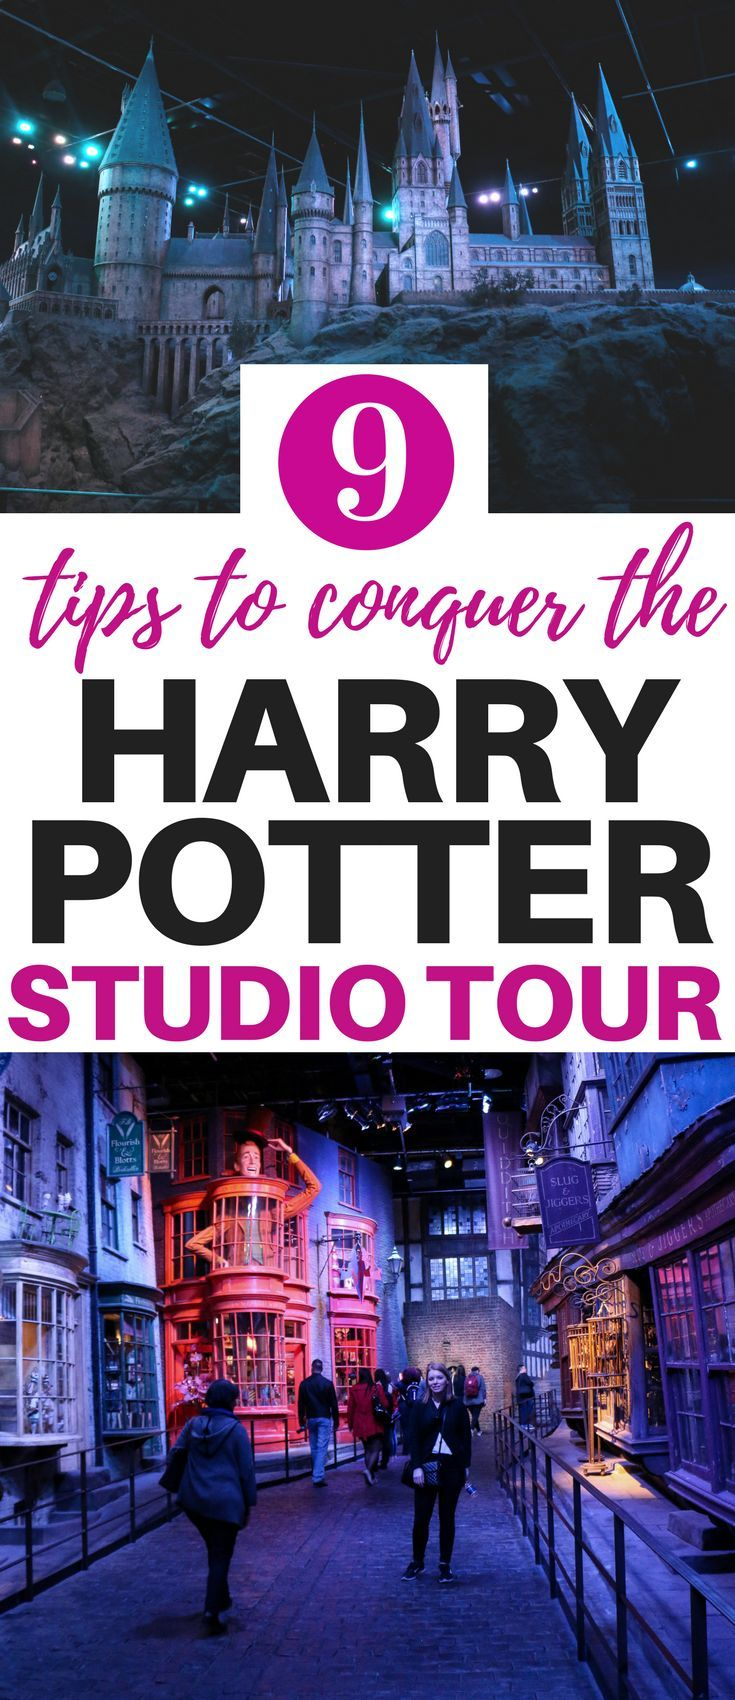 Harry Potter Studio Tour in London - Casey La Vie